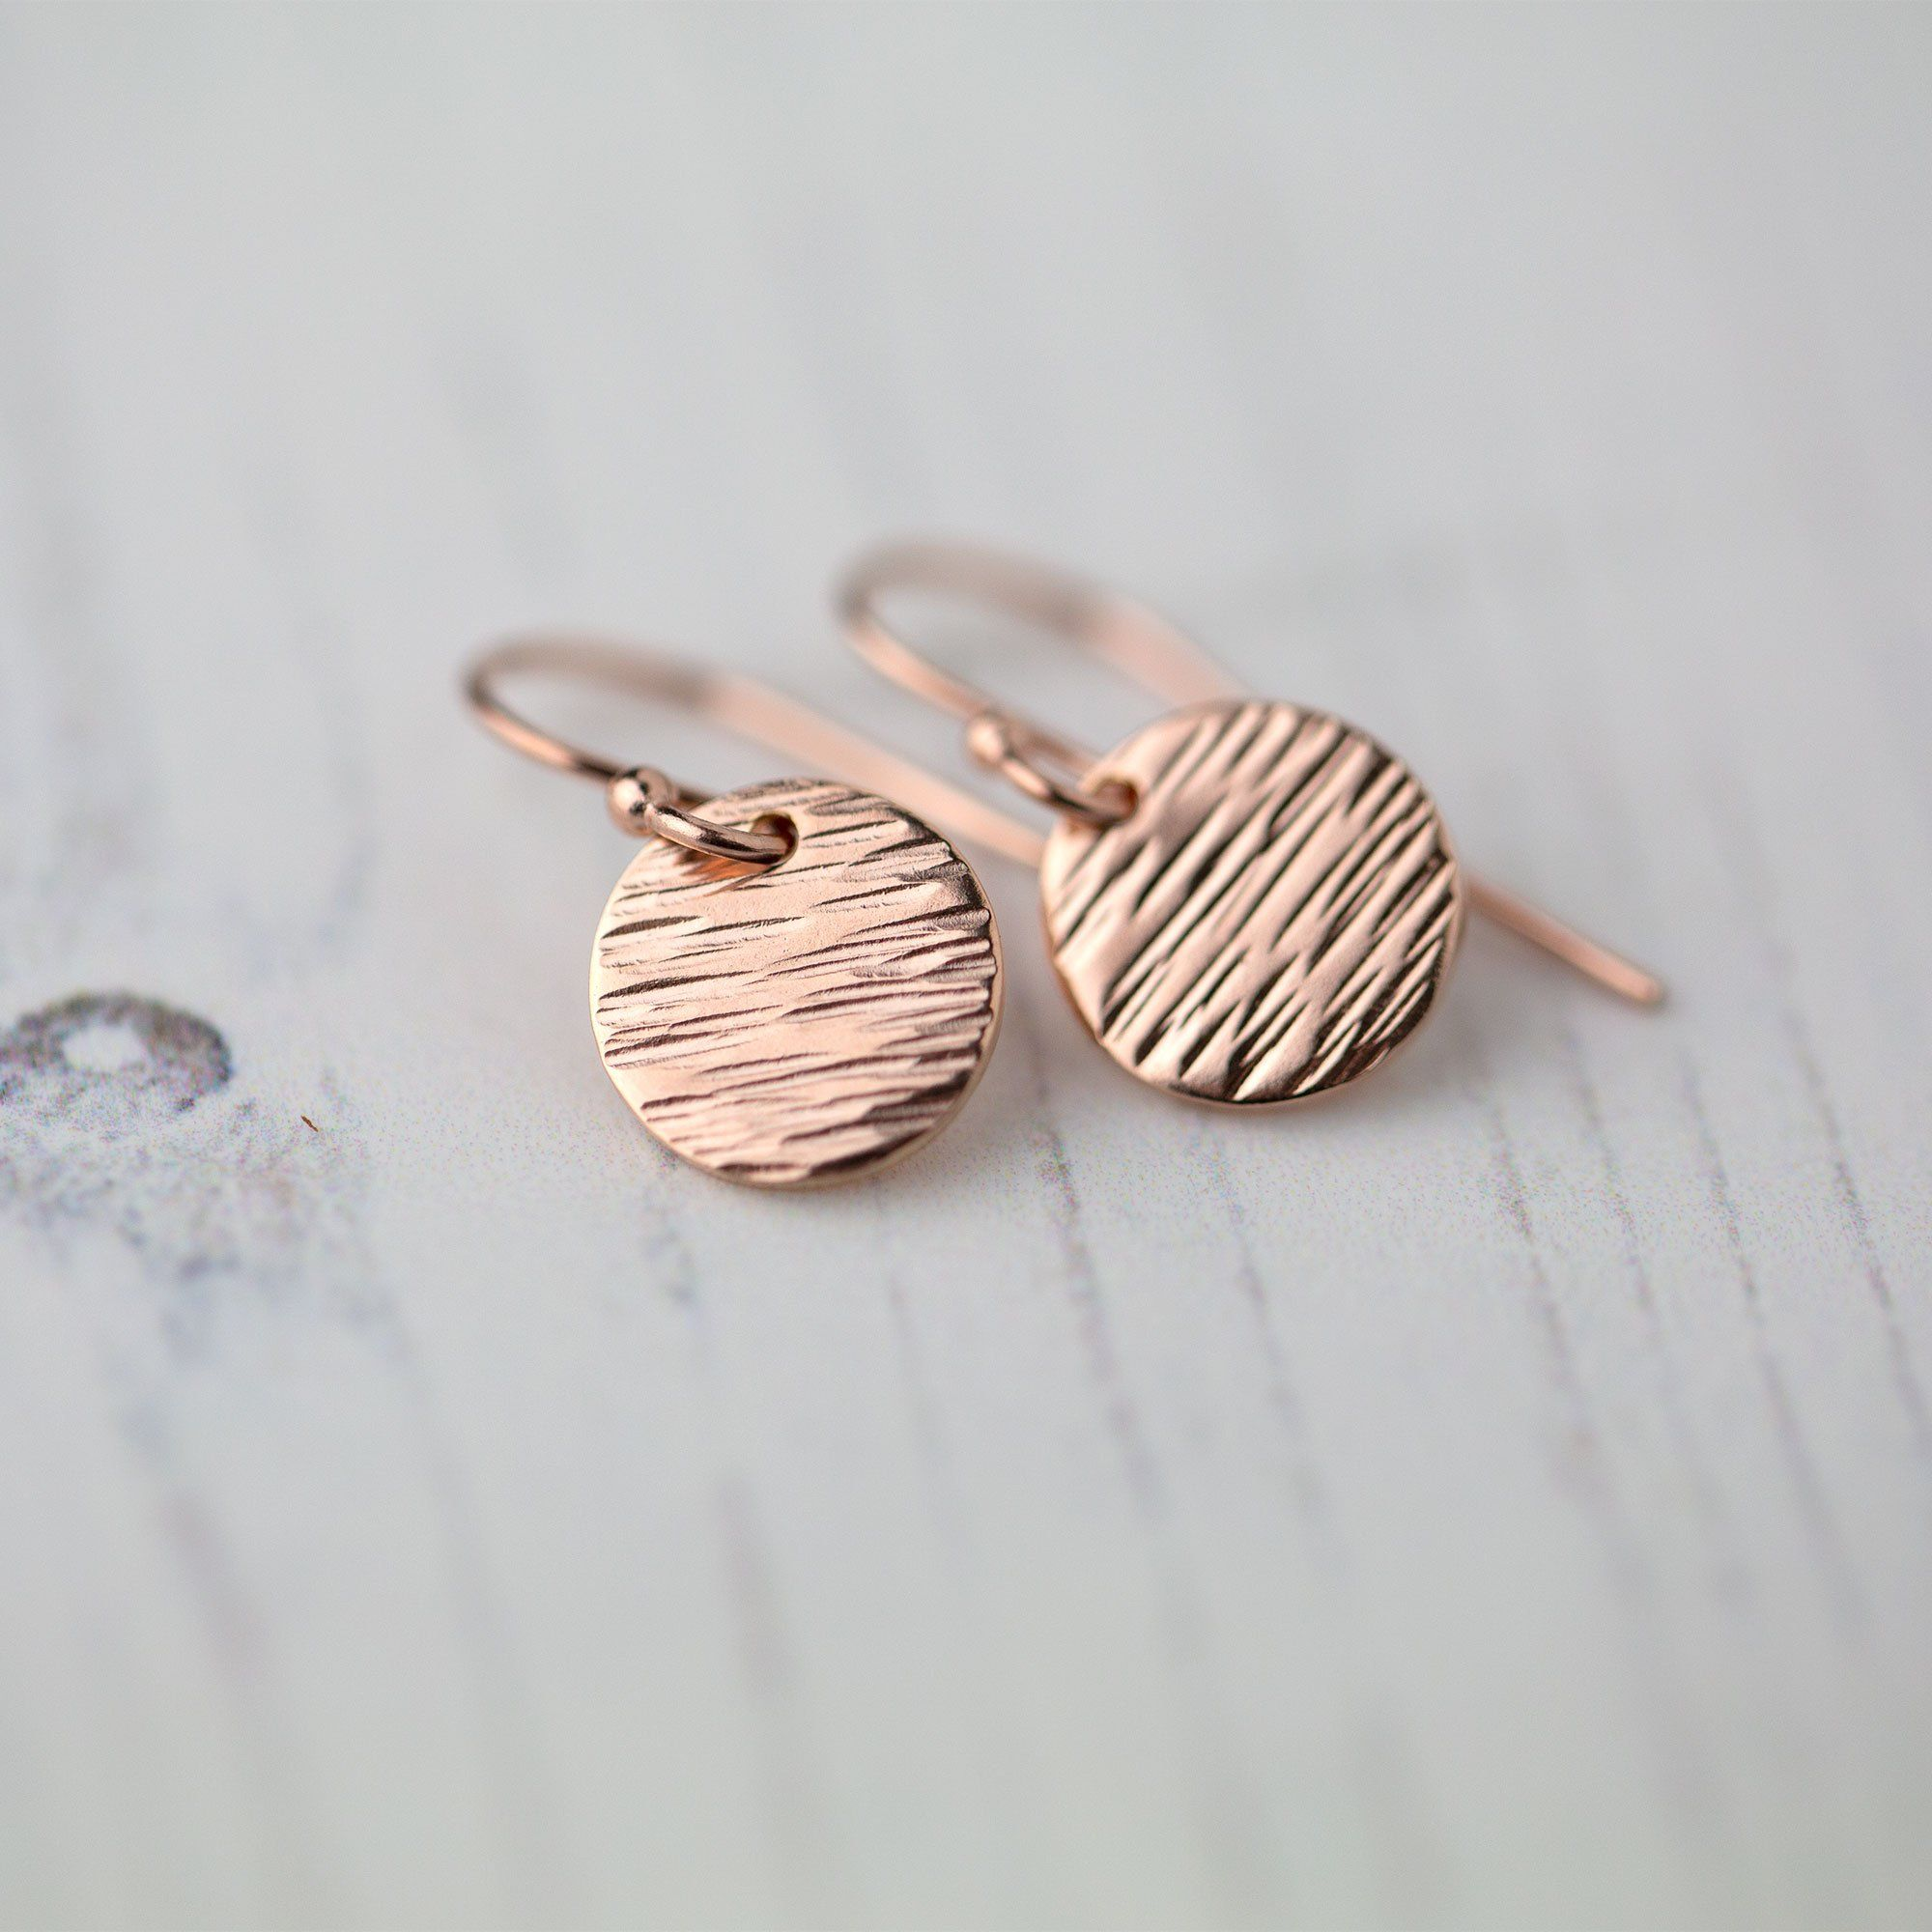 Rose Gold Textured Disc Earrings - Handmade Jewelry by Burnish